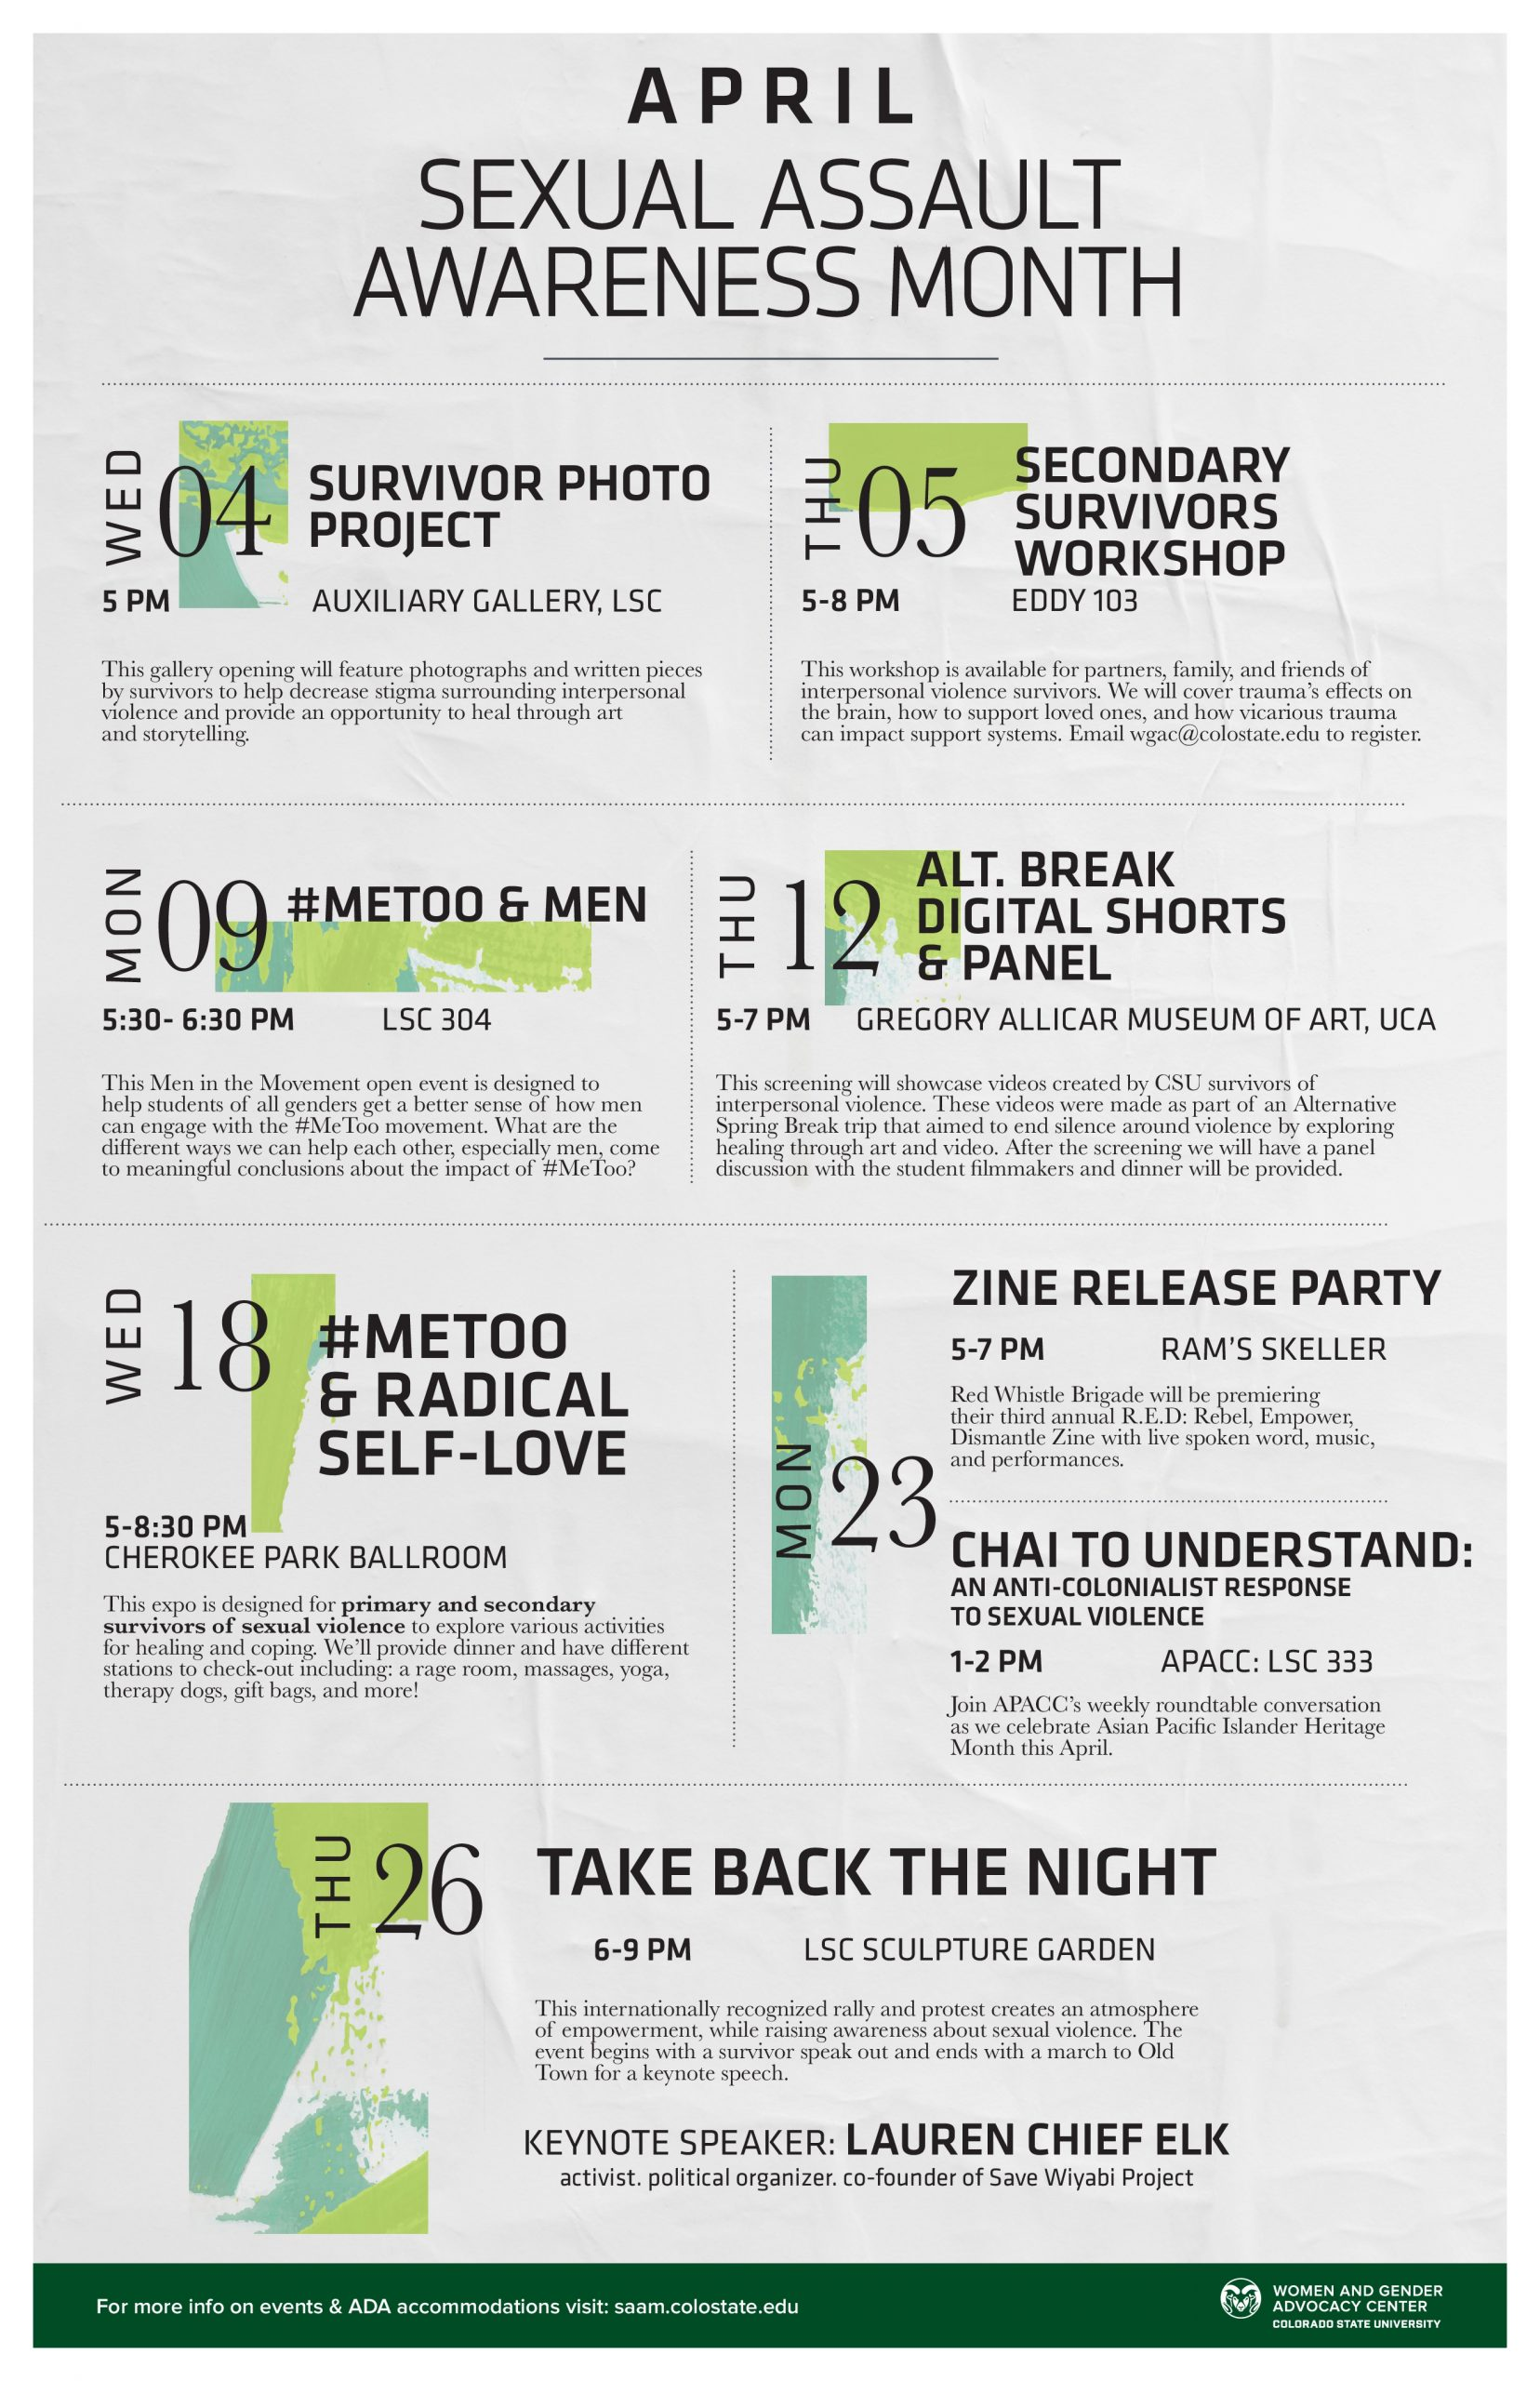 The WGAC calendar of events for Sexual Assault Awareness Month